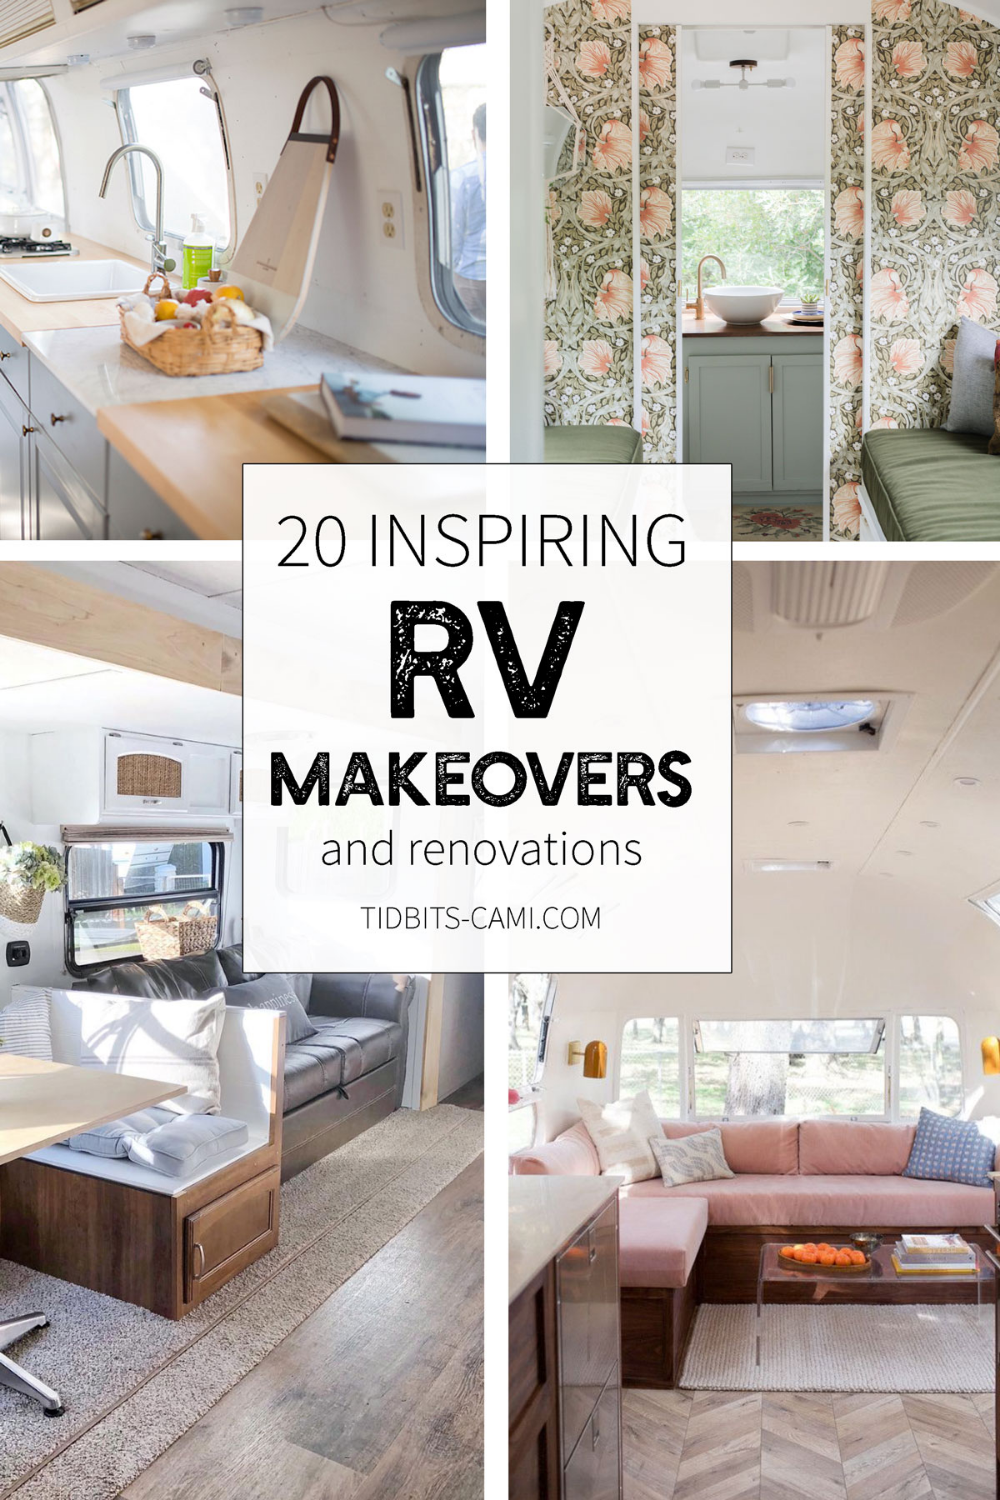 Is it possible to live in a home on wheels with style? Here are 20 inspiring RV makeovers and renovations to prove it just might be, with a little elbow grease and creative vision.  #rvliving #rv #rvmakeover #rvrenovation #camper #trailer #campermakeover #tidbitsonwheels #modernrv #rvstyle